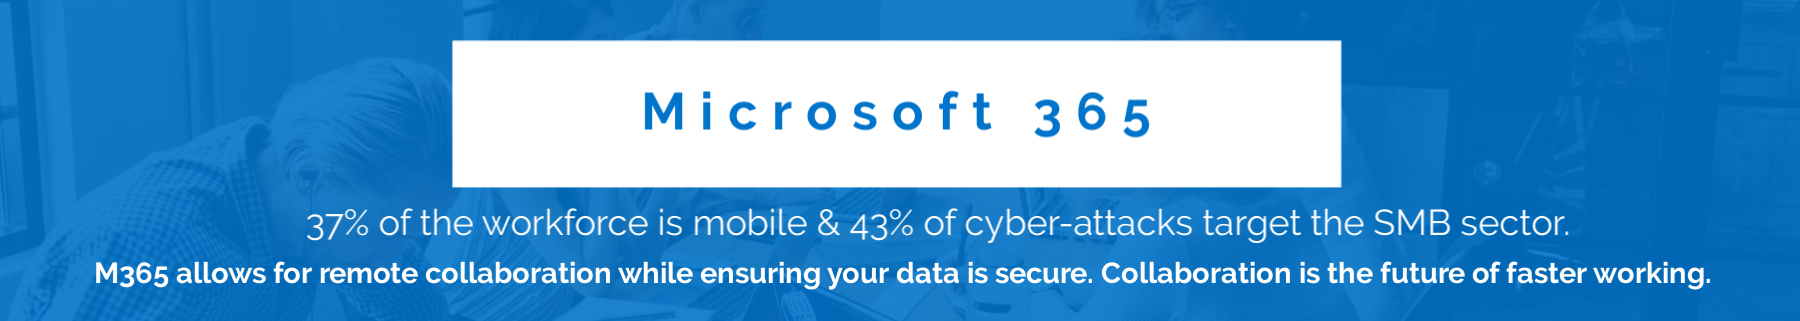 Microsoft 365 Business | Discover the Microsoft 365 Business